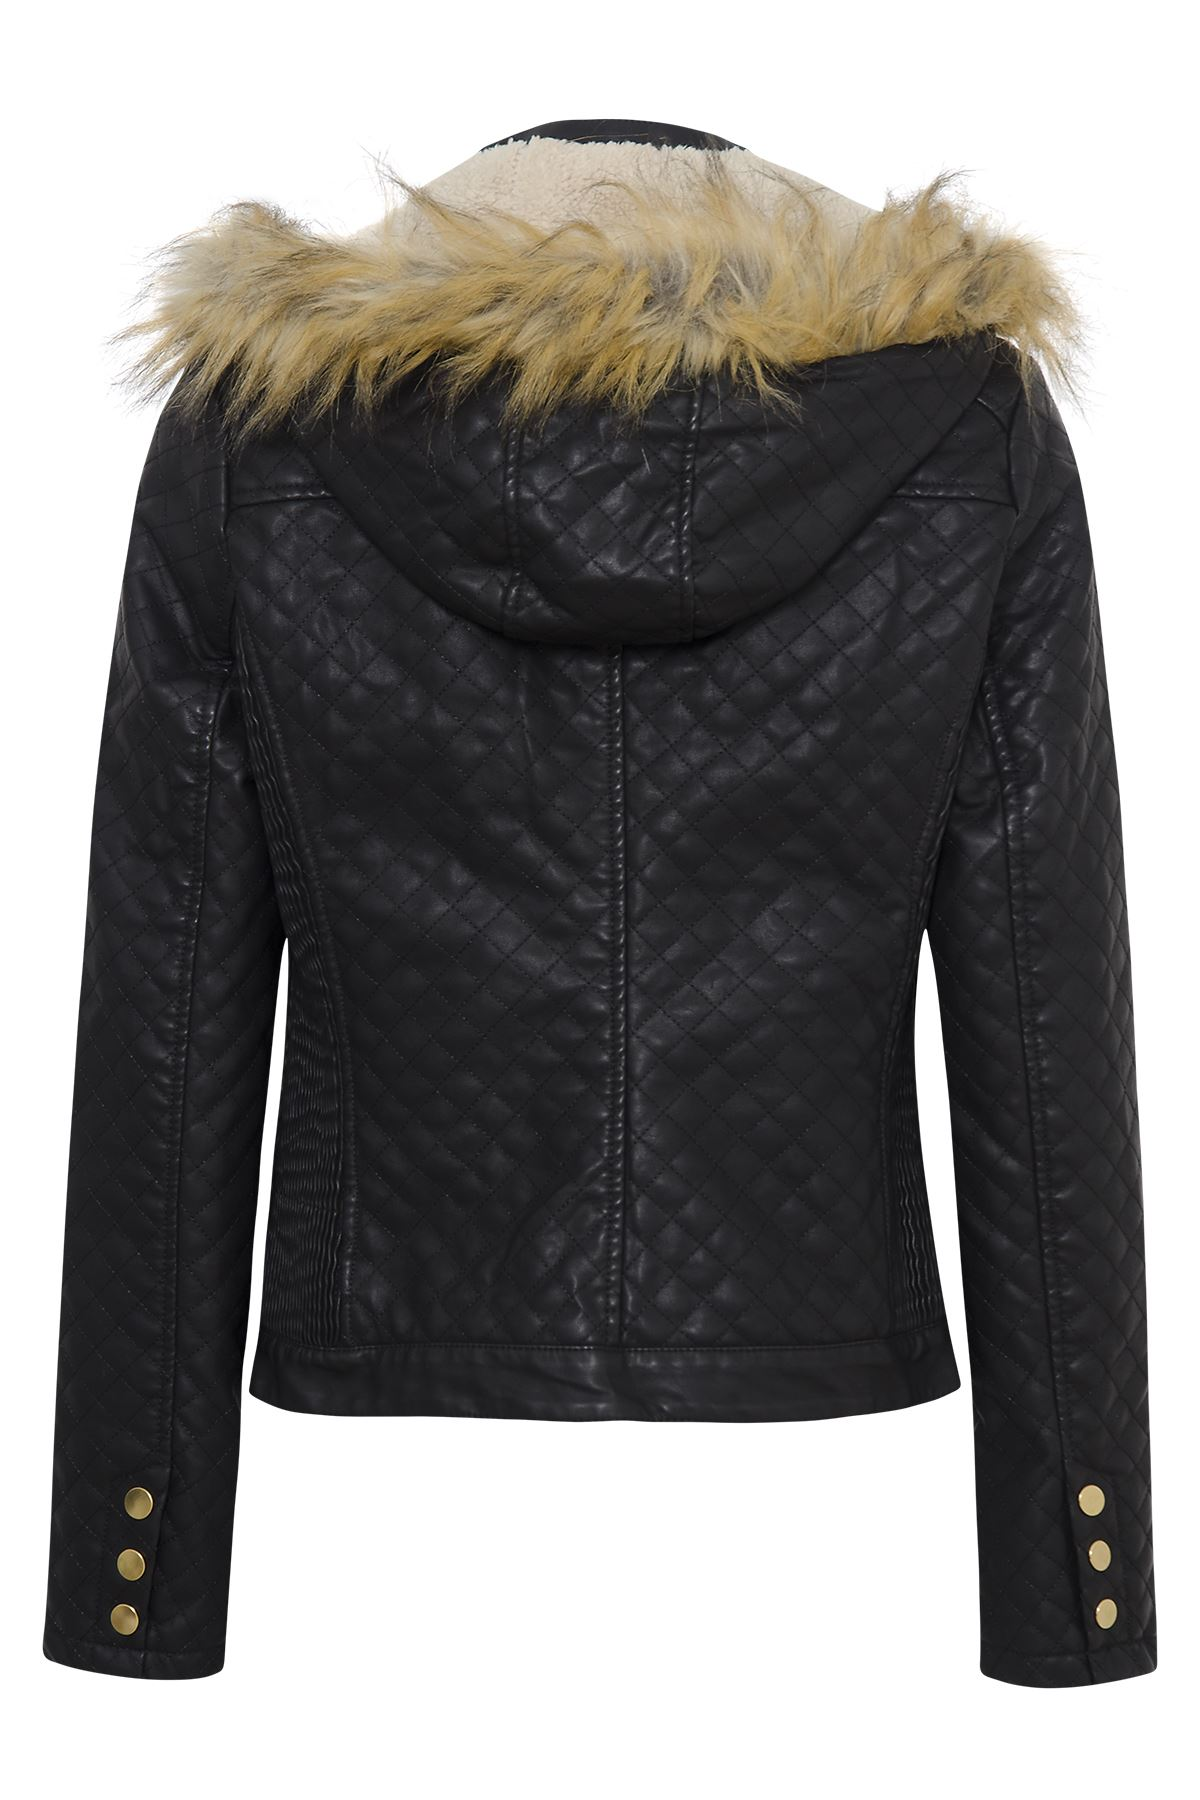 Womens faux leather hooded jacket